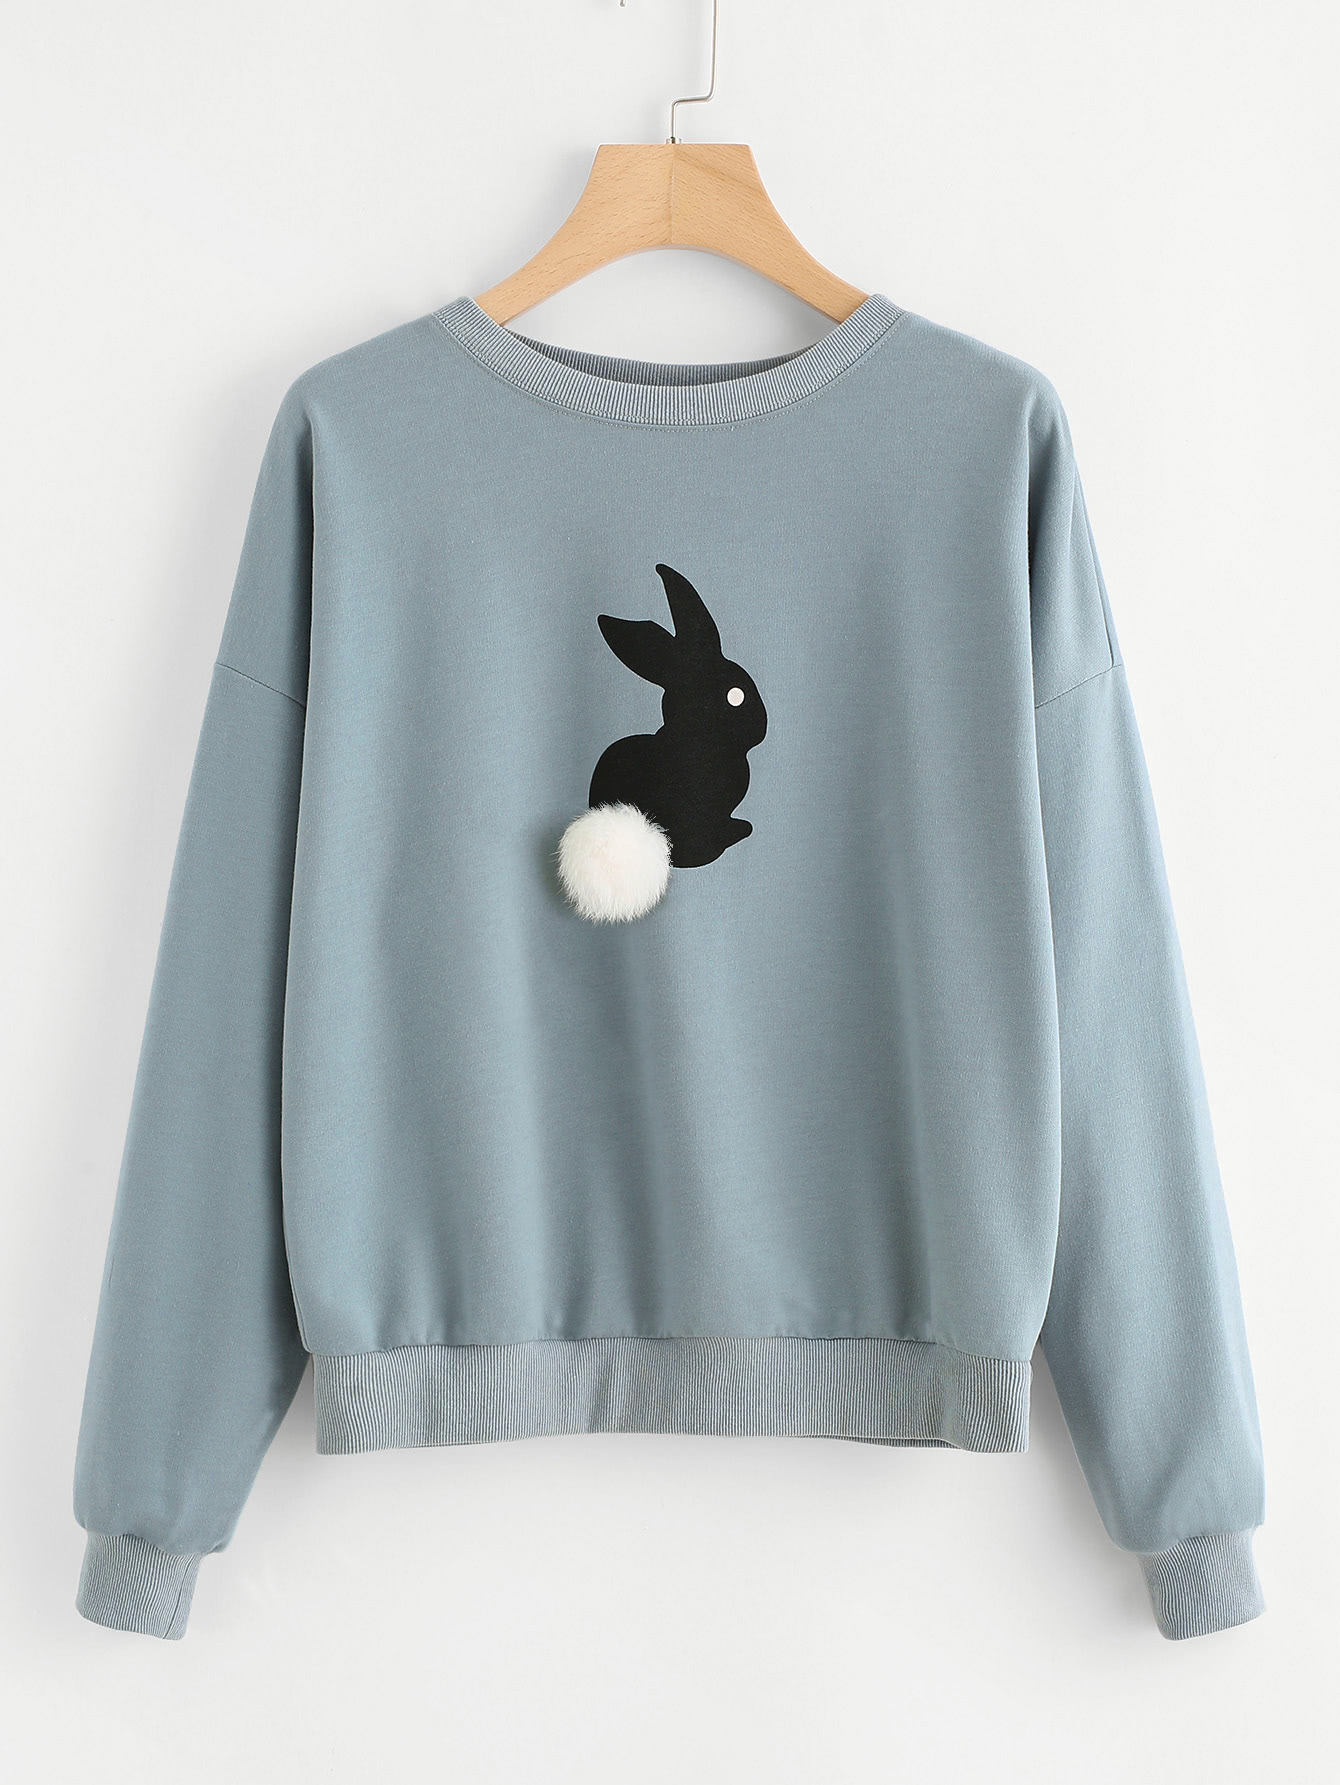 Pom Pom Ball Applique Rabbit Print Pullover pom pom ball applique rabbit print pullover